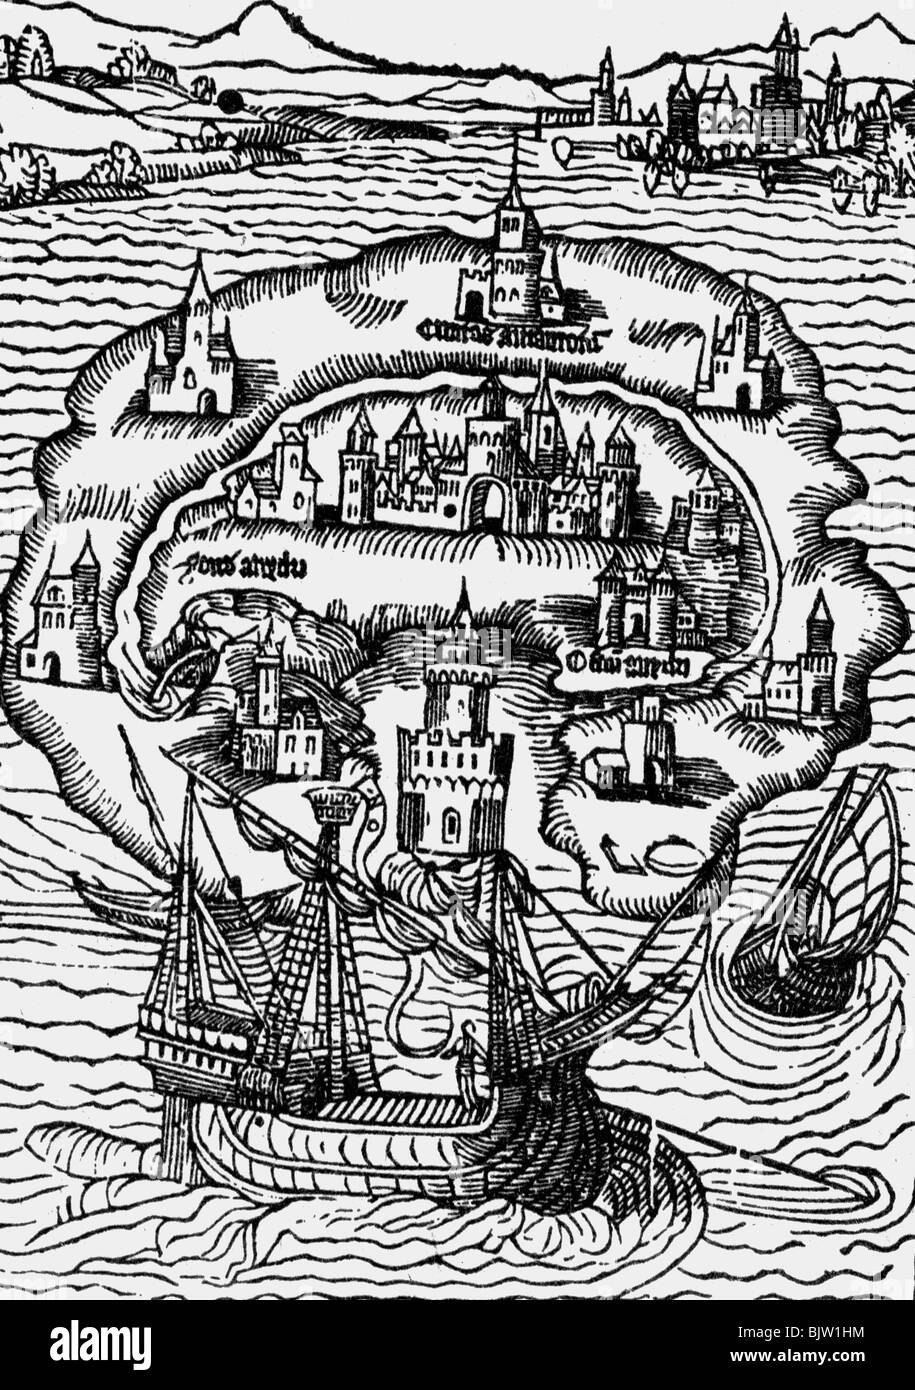 More, Thomas, 7.2. 1478 - 6.7.1535, English philosopher and politician, works, 'Utopia', 1516, title, Island - Stock Image